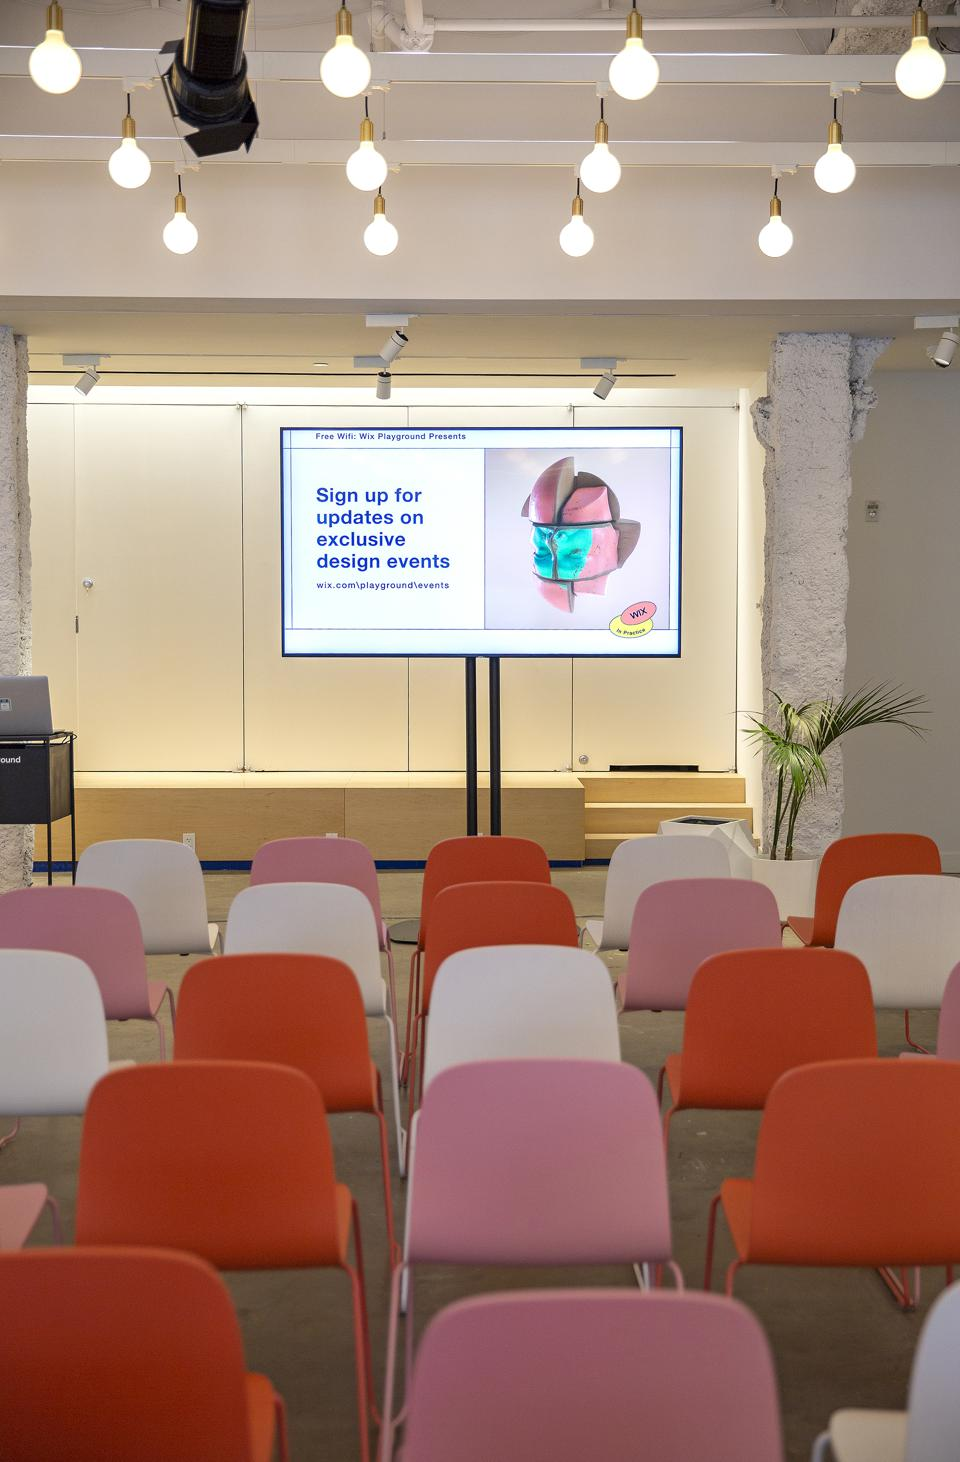 A seminar at the Wix playground in New York